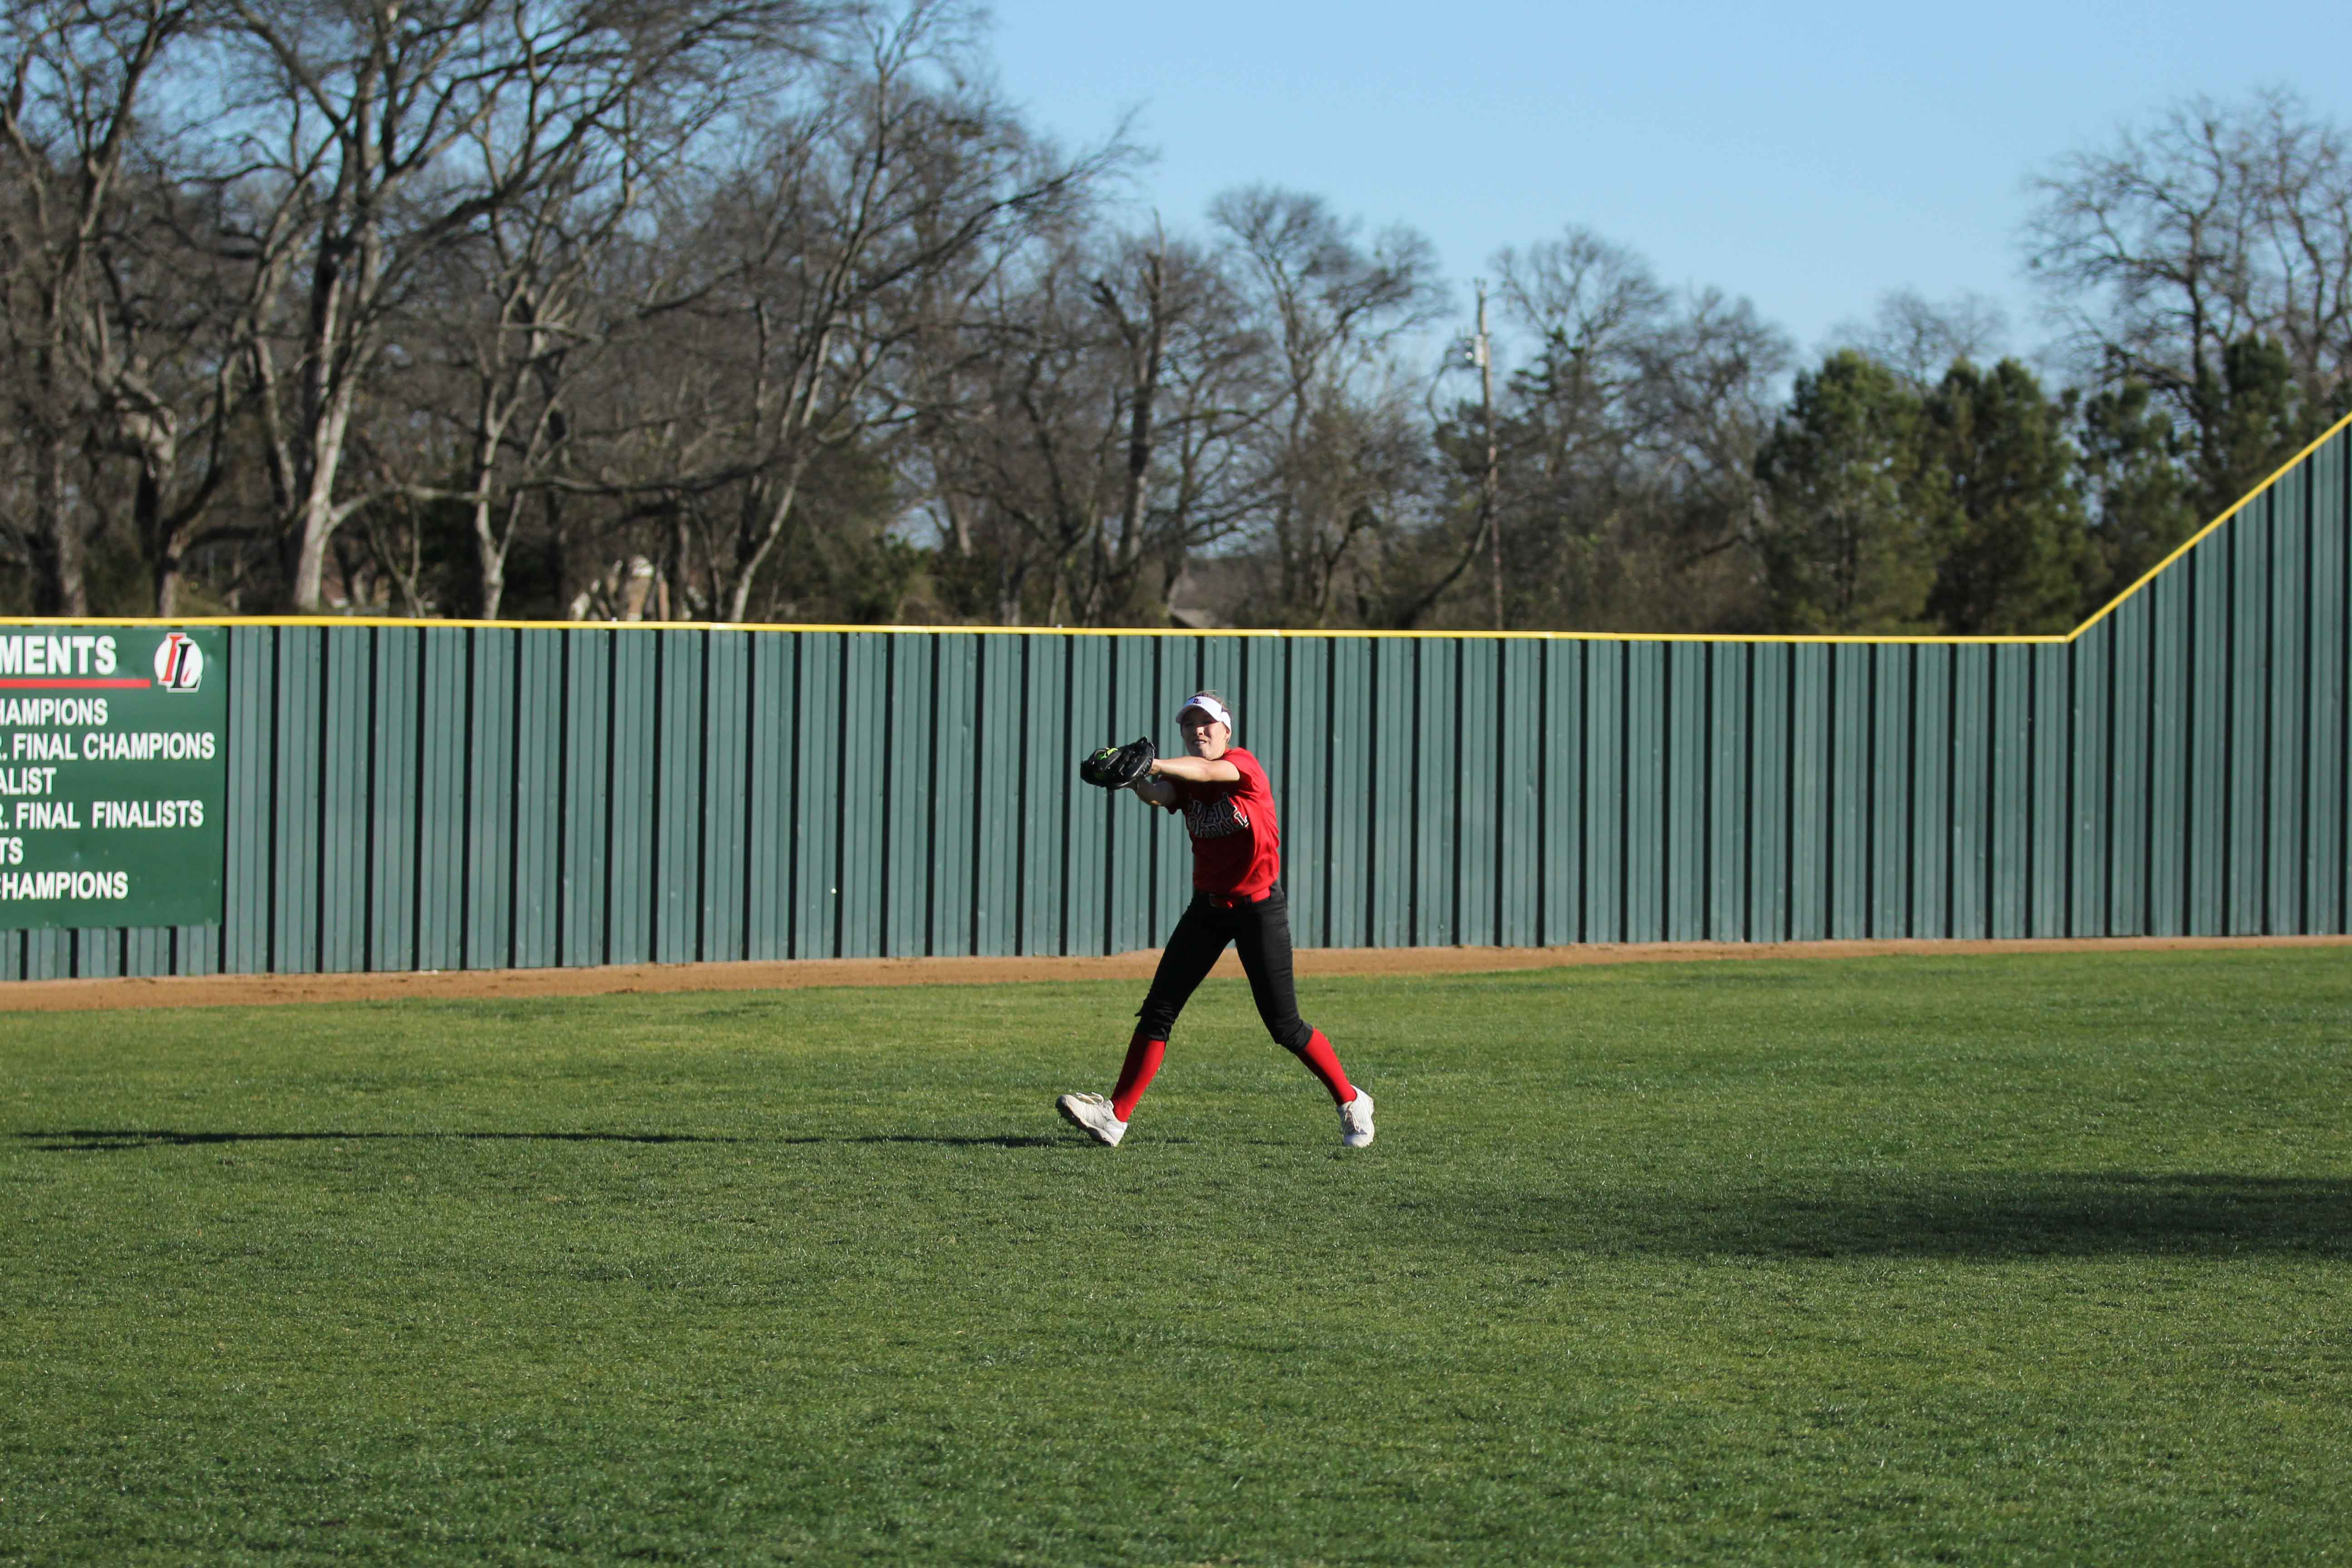 Alex Bellows makes a catch in the outfield during practice.